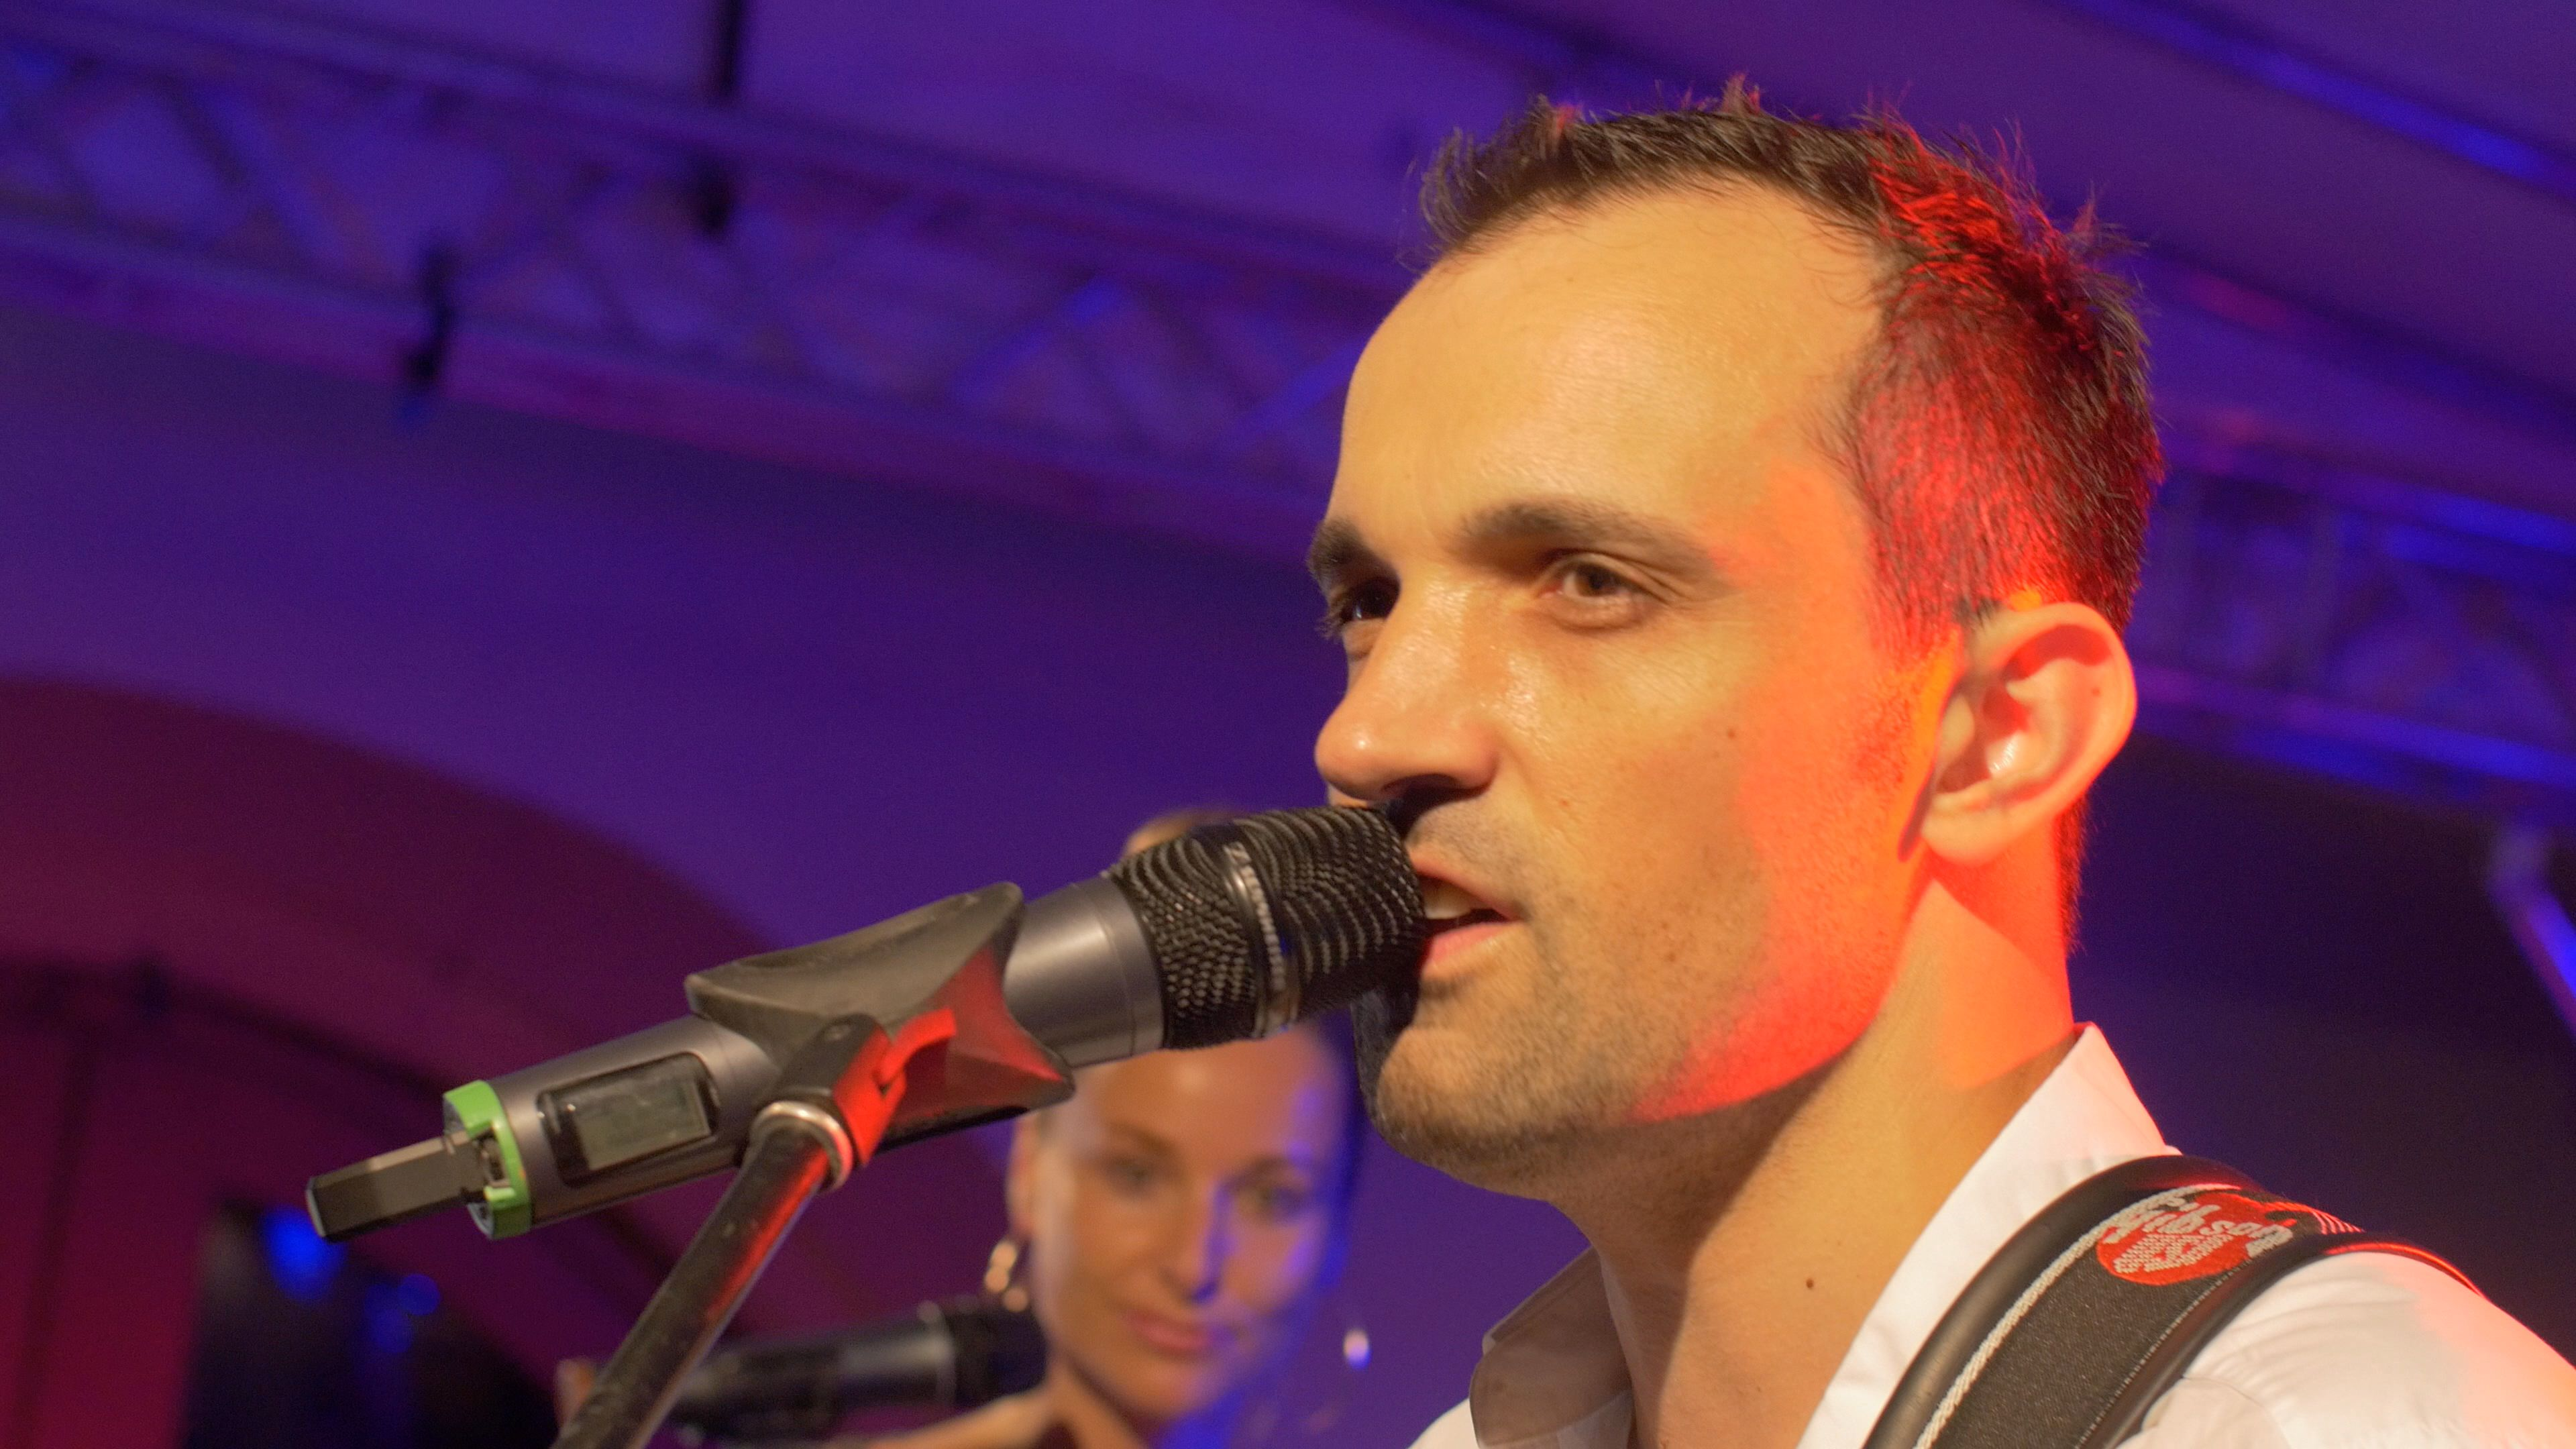 abgroovebereit Live Band : Get Lucky by Daft Punk :